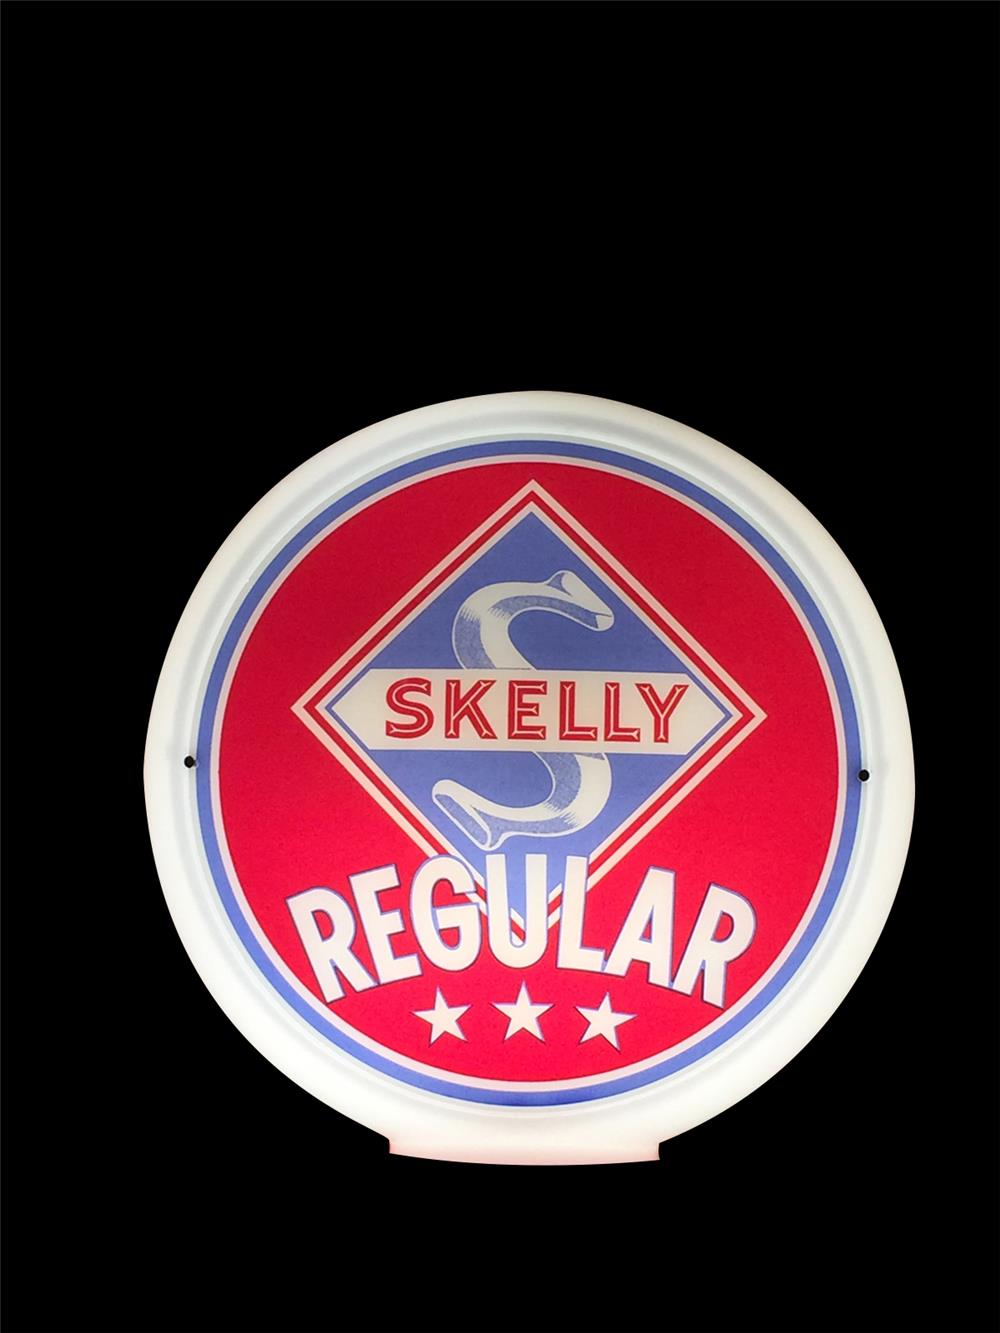 Spectacular 1940s Skelly Regular Gasoline wide-bodied glass gas pump globe. - Front 3/4 - 192351